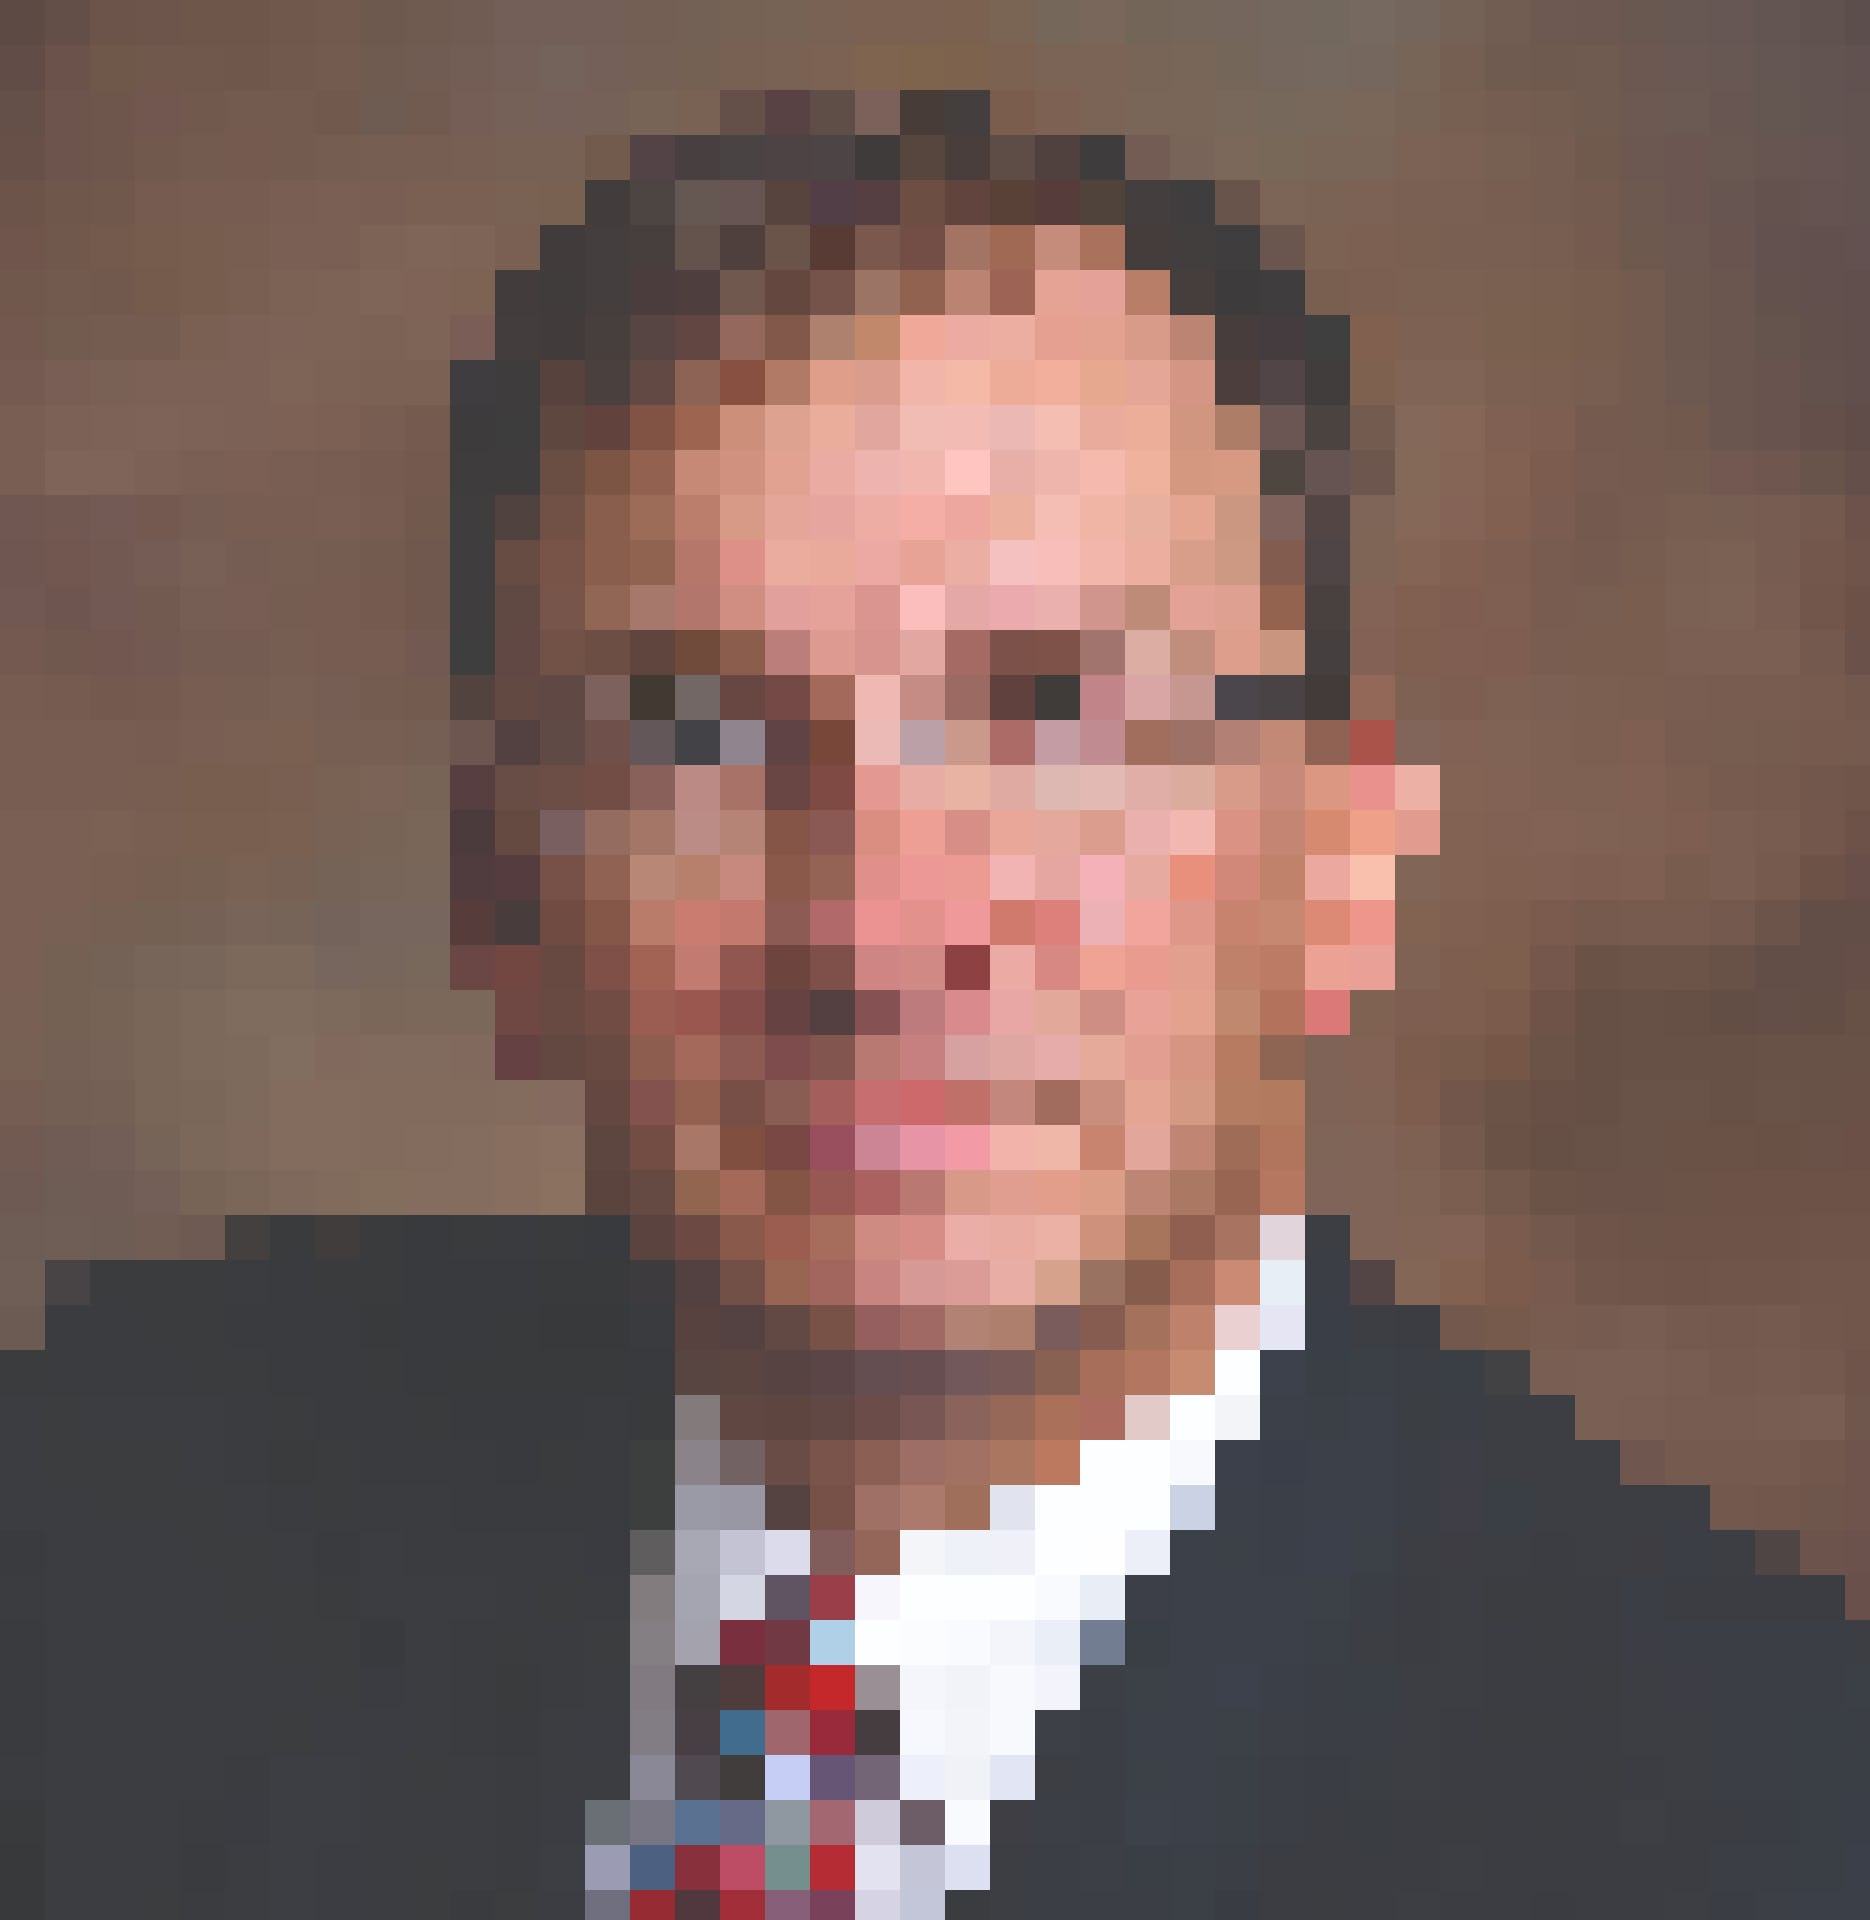 Robert W. Sharps, Head of Investments und Group Chief Investment Officer bei T. Rowe Price.